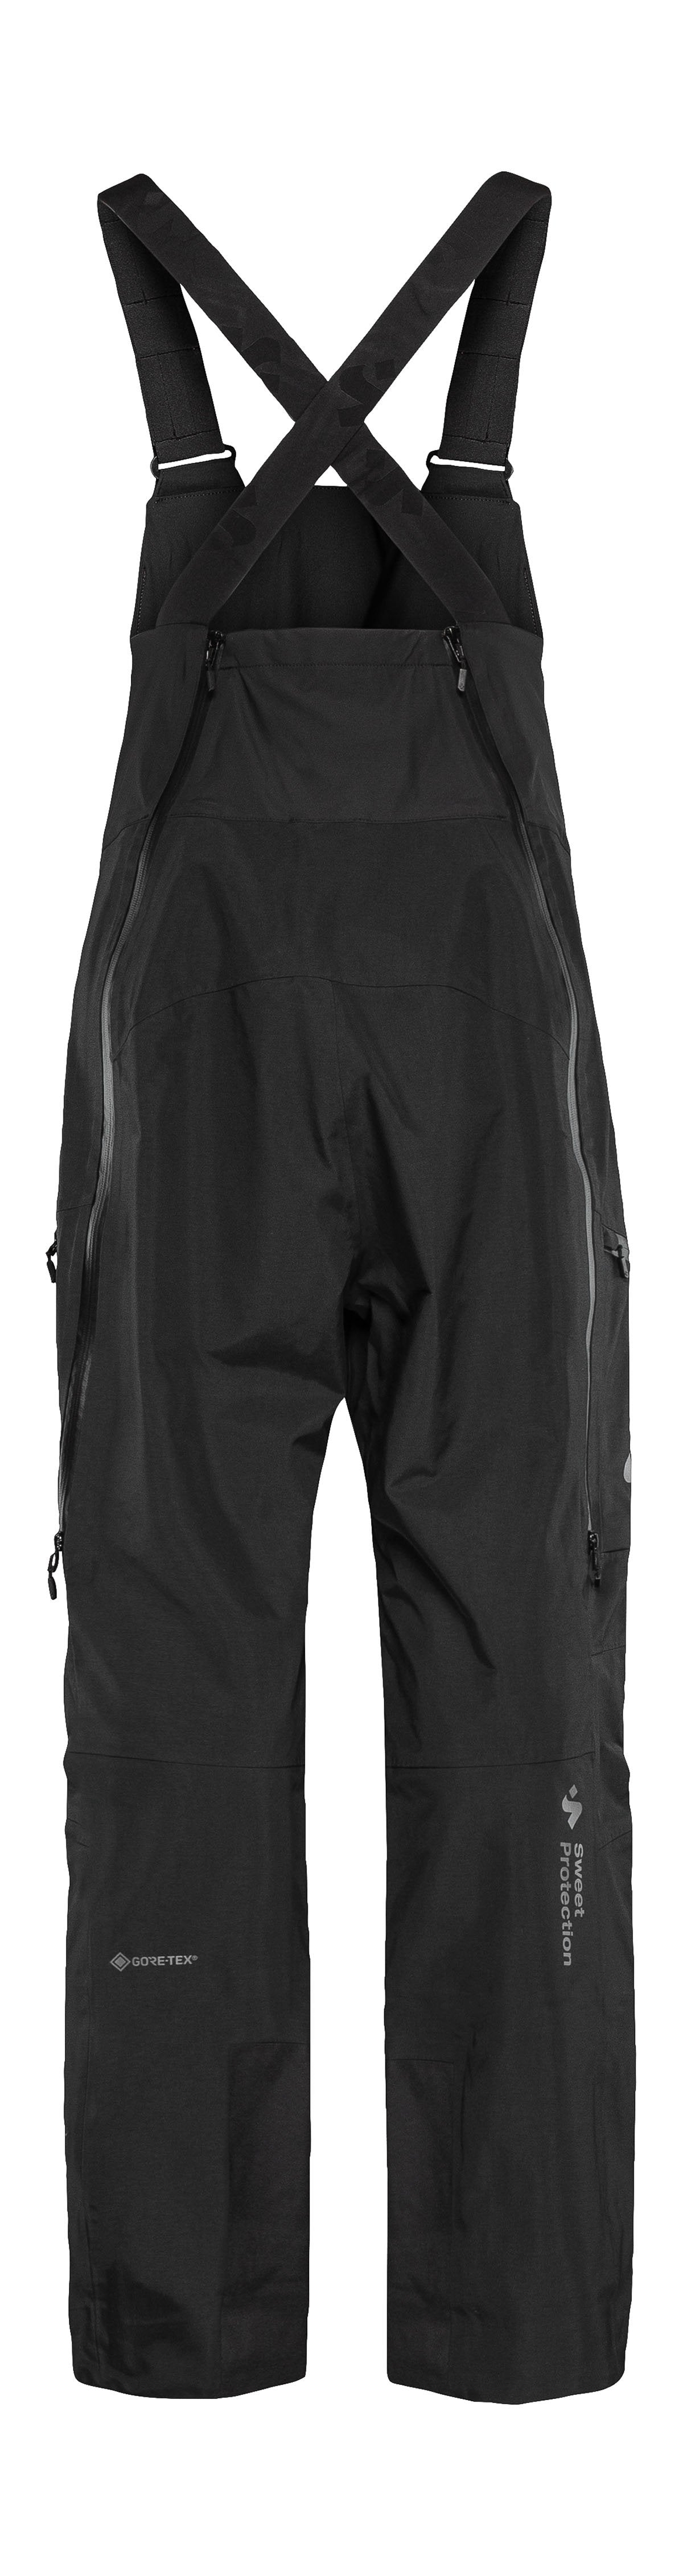 Sweet Protection Crusader X Gore-Tex Bib Skibukser